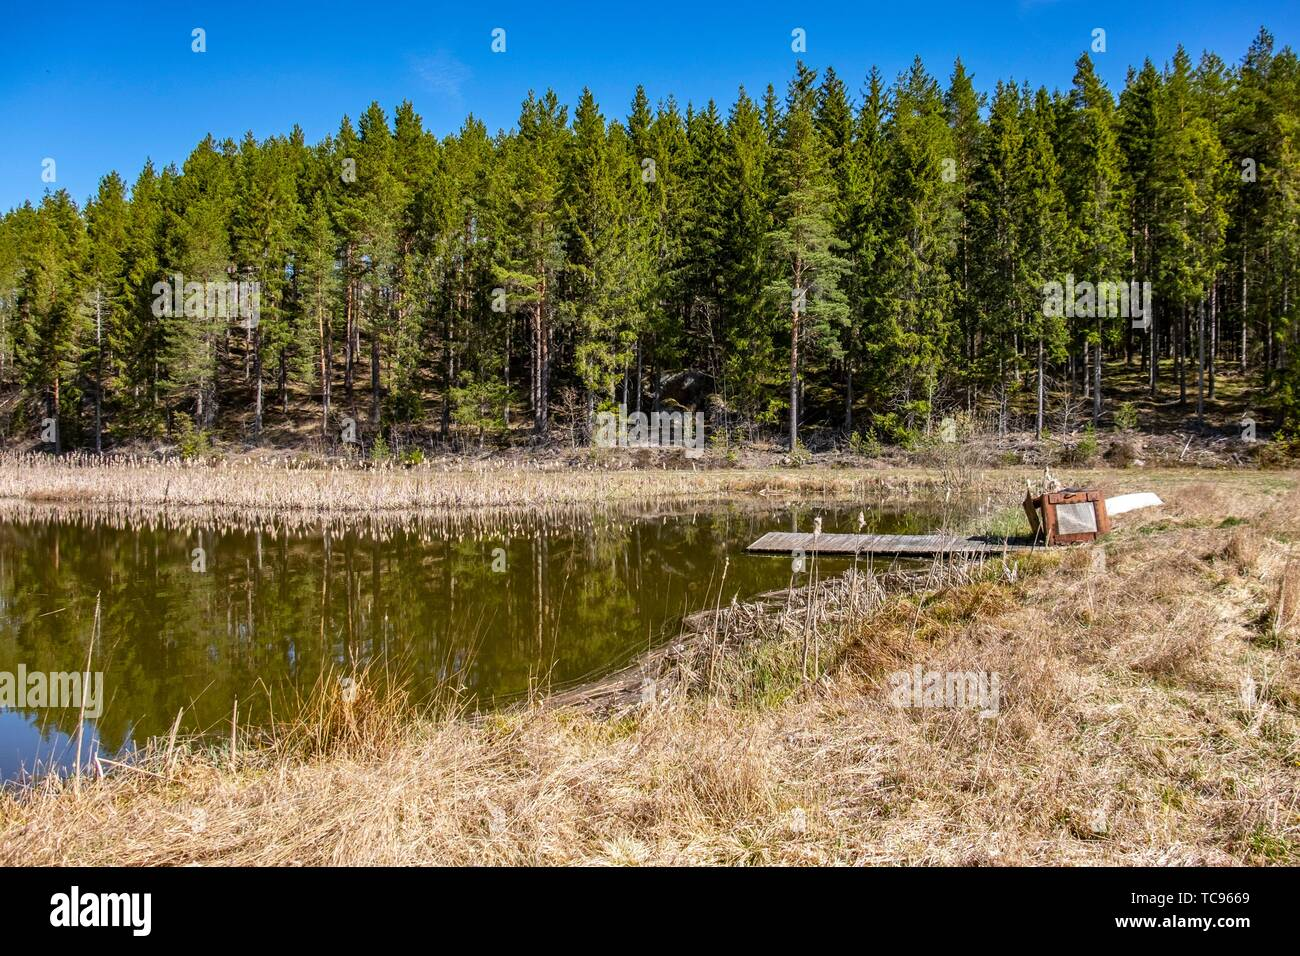 Lake and forests of Sweden. - Stock Image